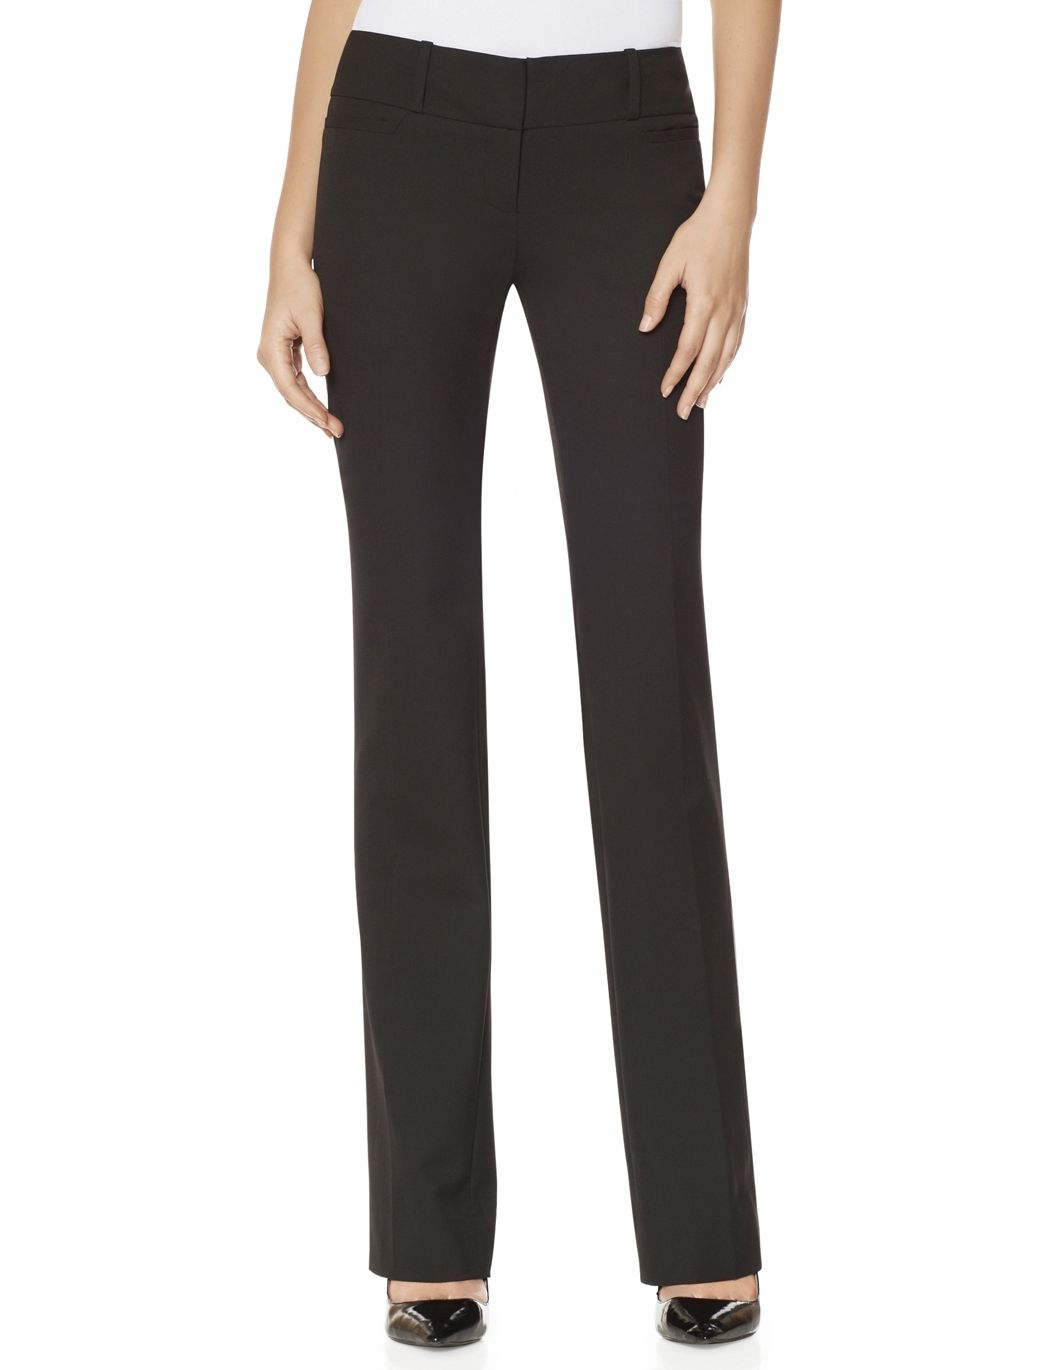 Charcoal grey bootcut trousers